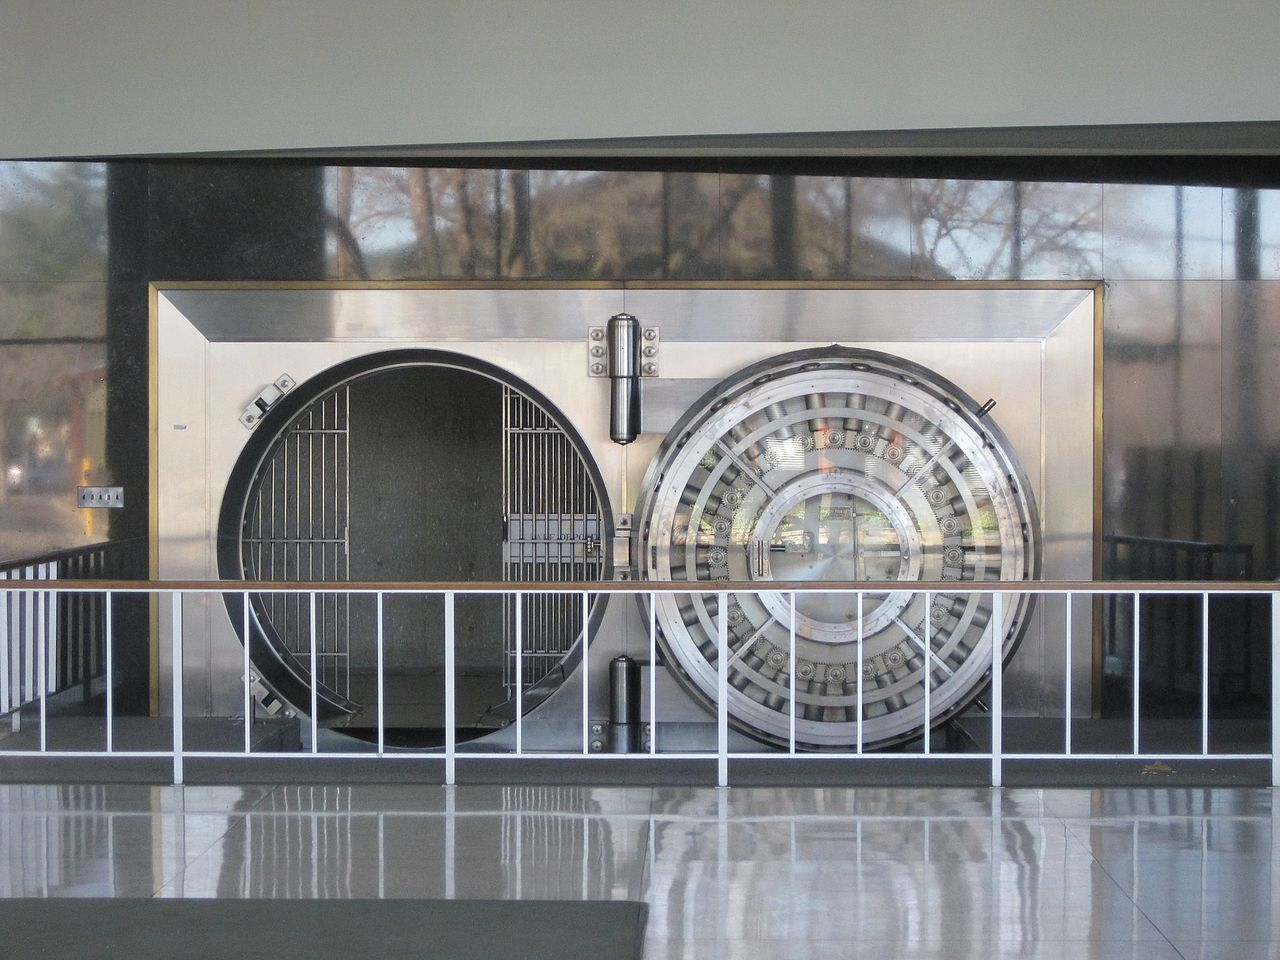 "Datensicherheit für Firmen hat Vorrang - Foto: John McGehjee (https://commons.wikimedia.org/wiki/File:Bank_of_the_West_Los_Altos_branch_vault.jpg), ""Bank of the West Los Altos branch vault"", https://creativecommons.org/publicdomain/zero/1.0/legalcode"